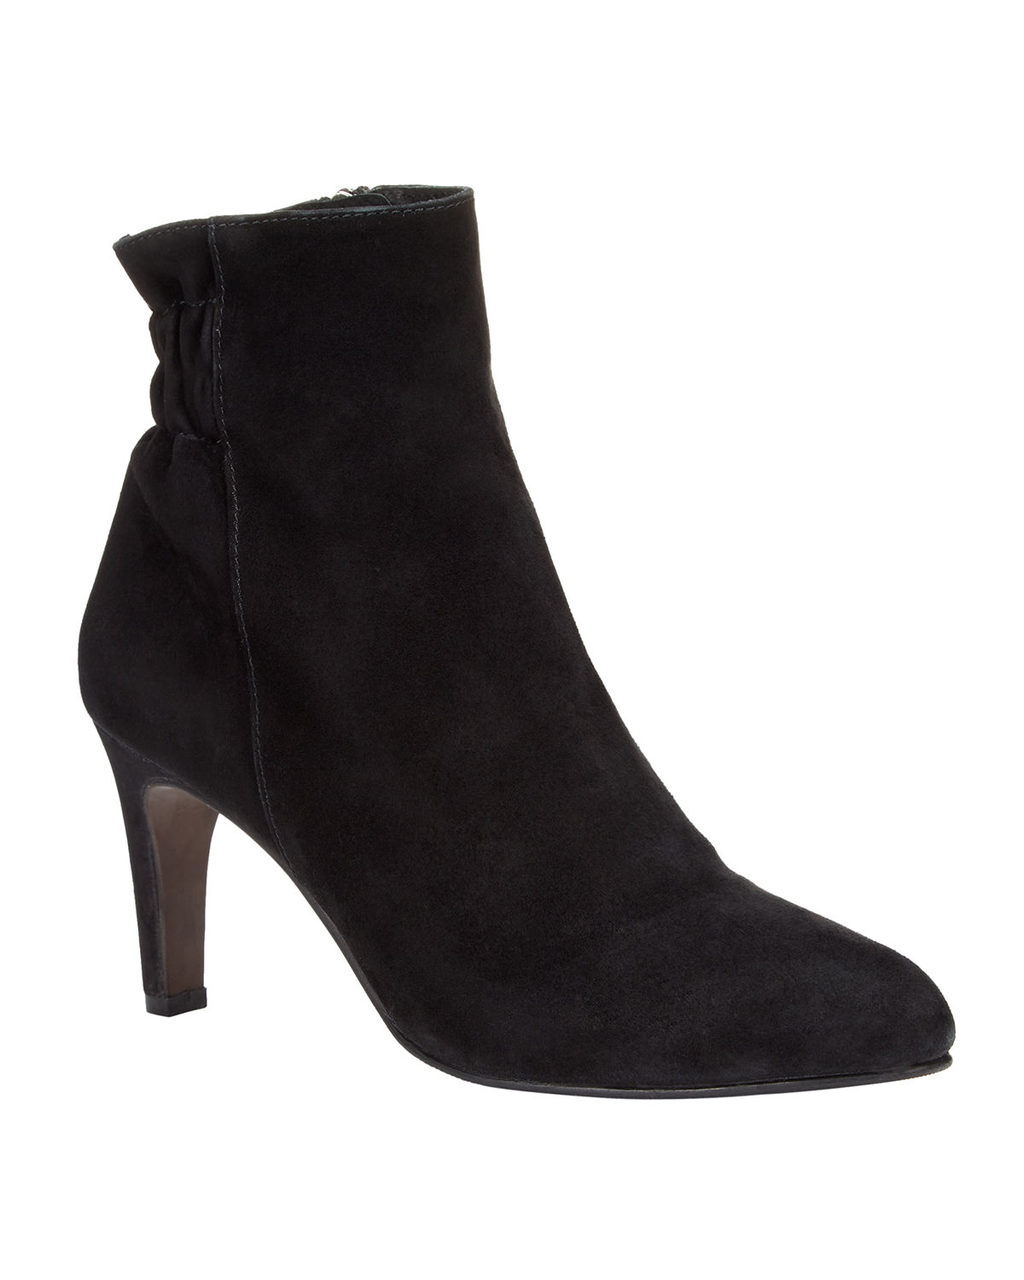 Jenny Ankle Boot - predominant colour: black; occasions: casual, creative work; material: suede; heel height: mid; heel: stiletto; toe: pointed toe; boot length: ankle boot; style: standard; finish: plain; pattern: plain; wardrobe: basic; season: a/w 2016